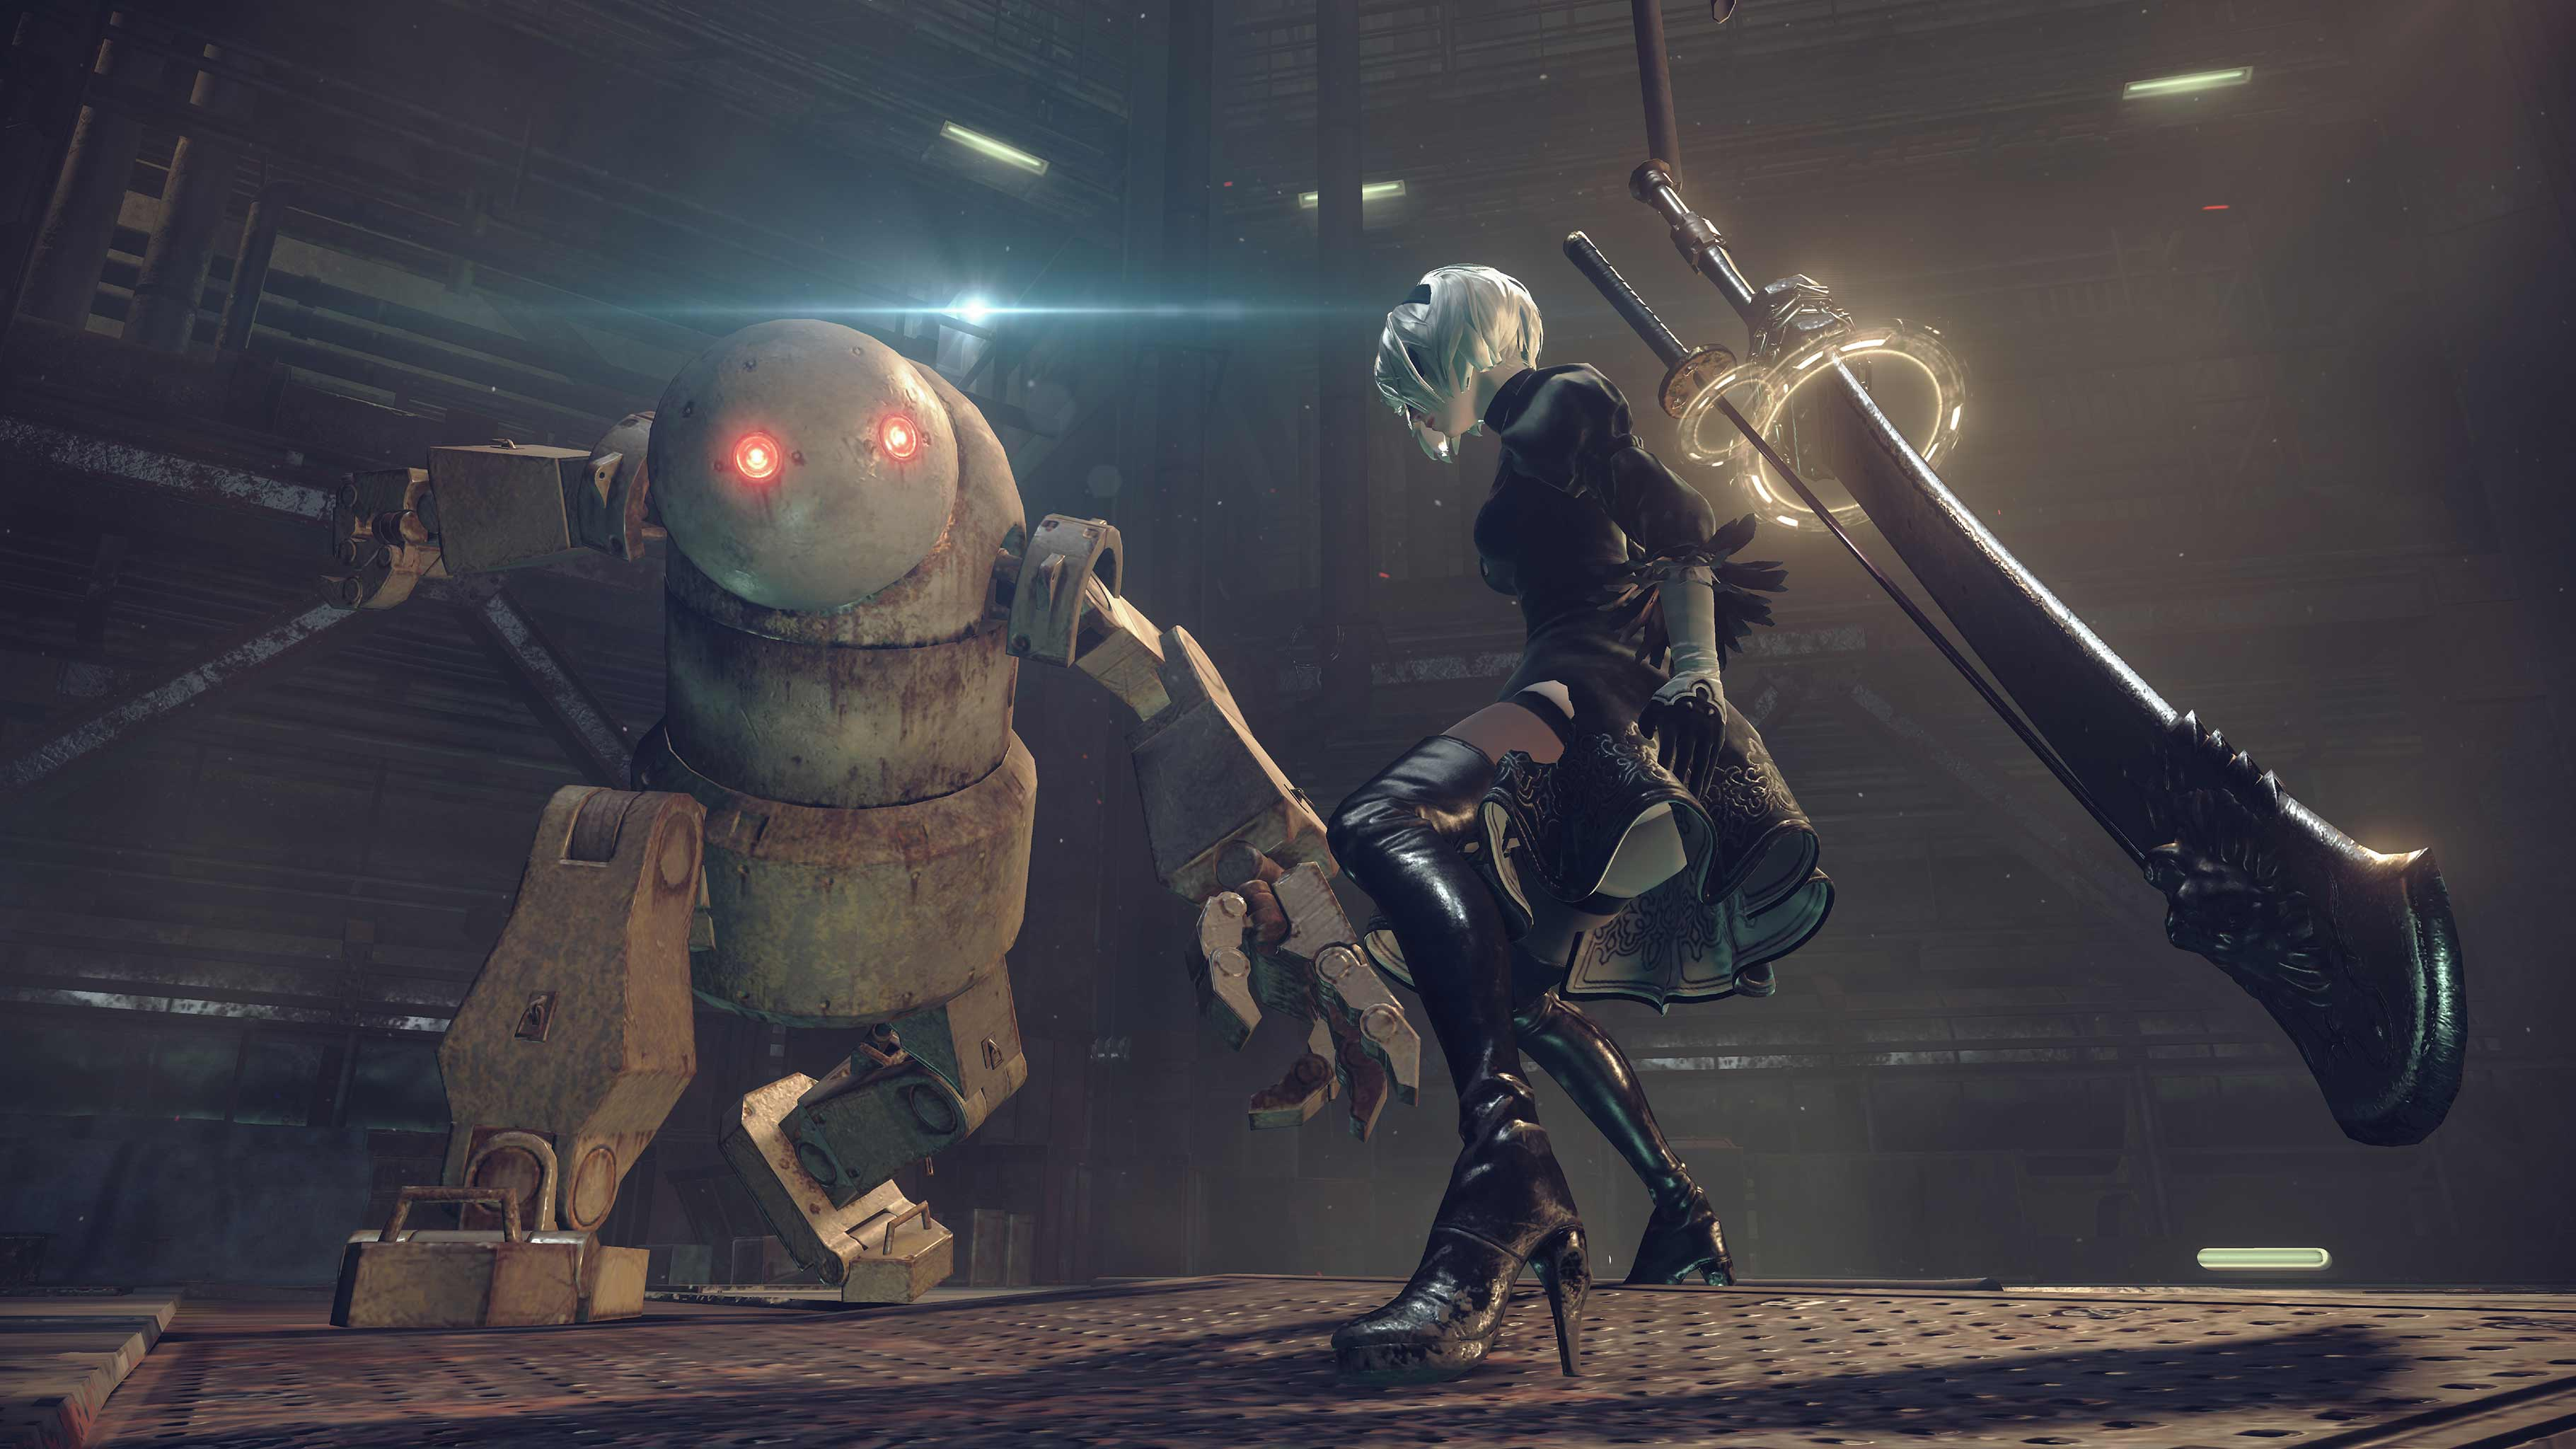 Here's your first look at Nier: Automata gameplay | VG247